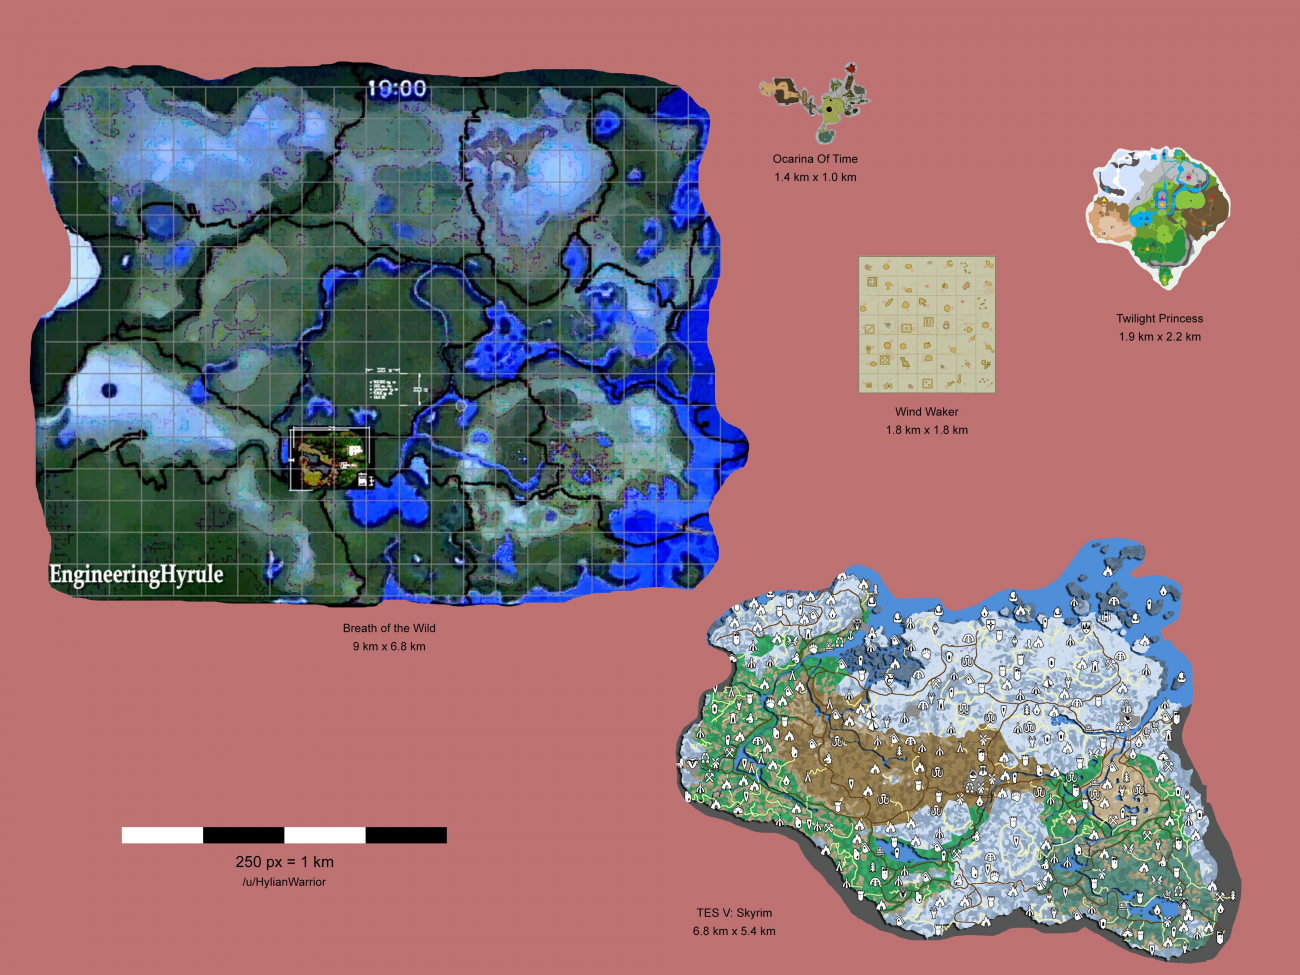 Zelda: Breath of the Wild's Hyrule is bigger than Skyrim on skyward sword map, wind waker map, star wars map, smash brothers map, harvest moon map, kingdom hearts map, minecraft map, mario world map, hyrule map, super mario map, zilla map, castlevania 3 map, gta map, castlevania 2 map, pokemon map, metroid map, oracle of ages map, ocarina of time map, mario kart map, ikana map,